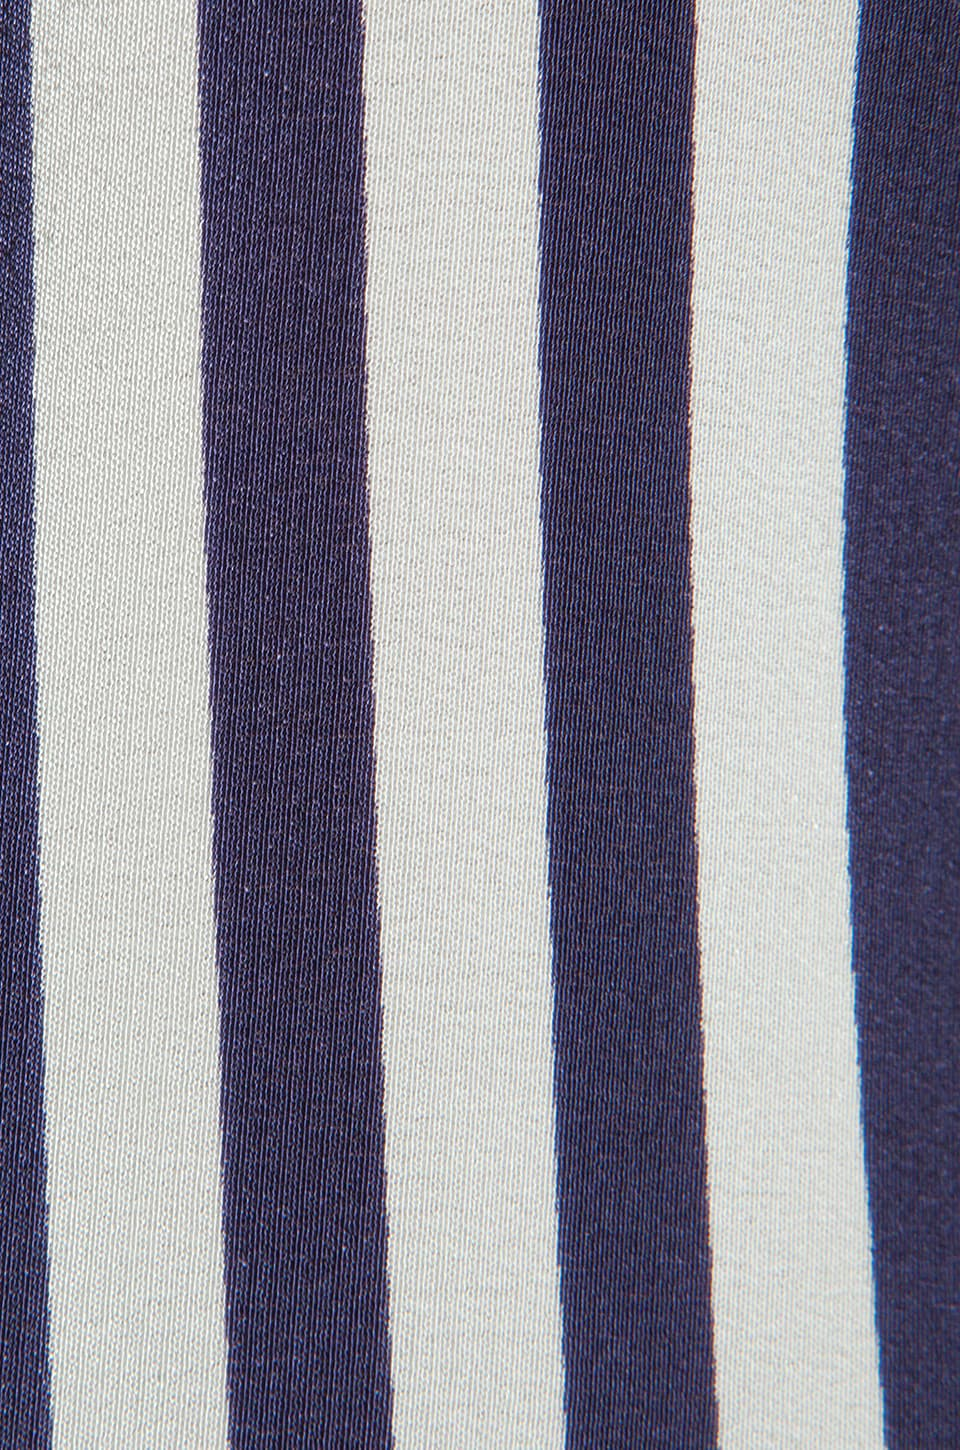 Joie Tyson Stripe Tank in Blue Violet